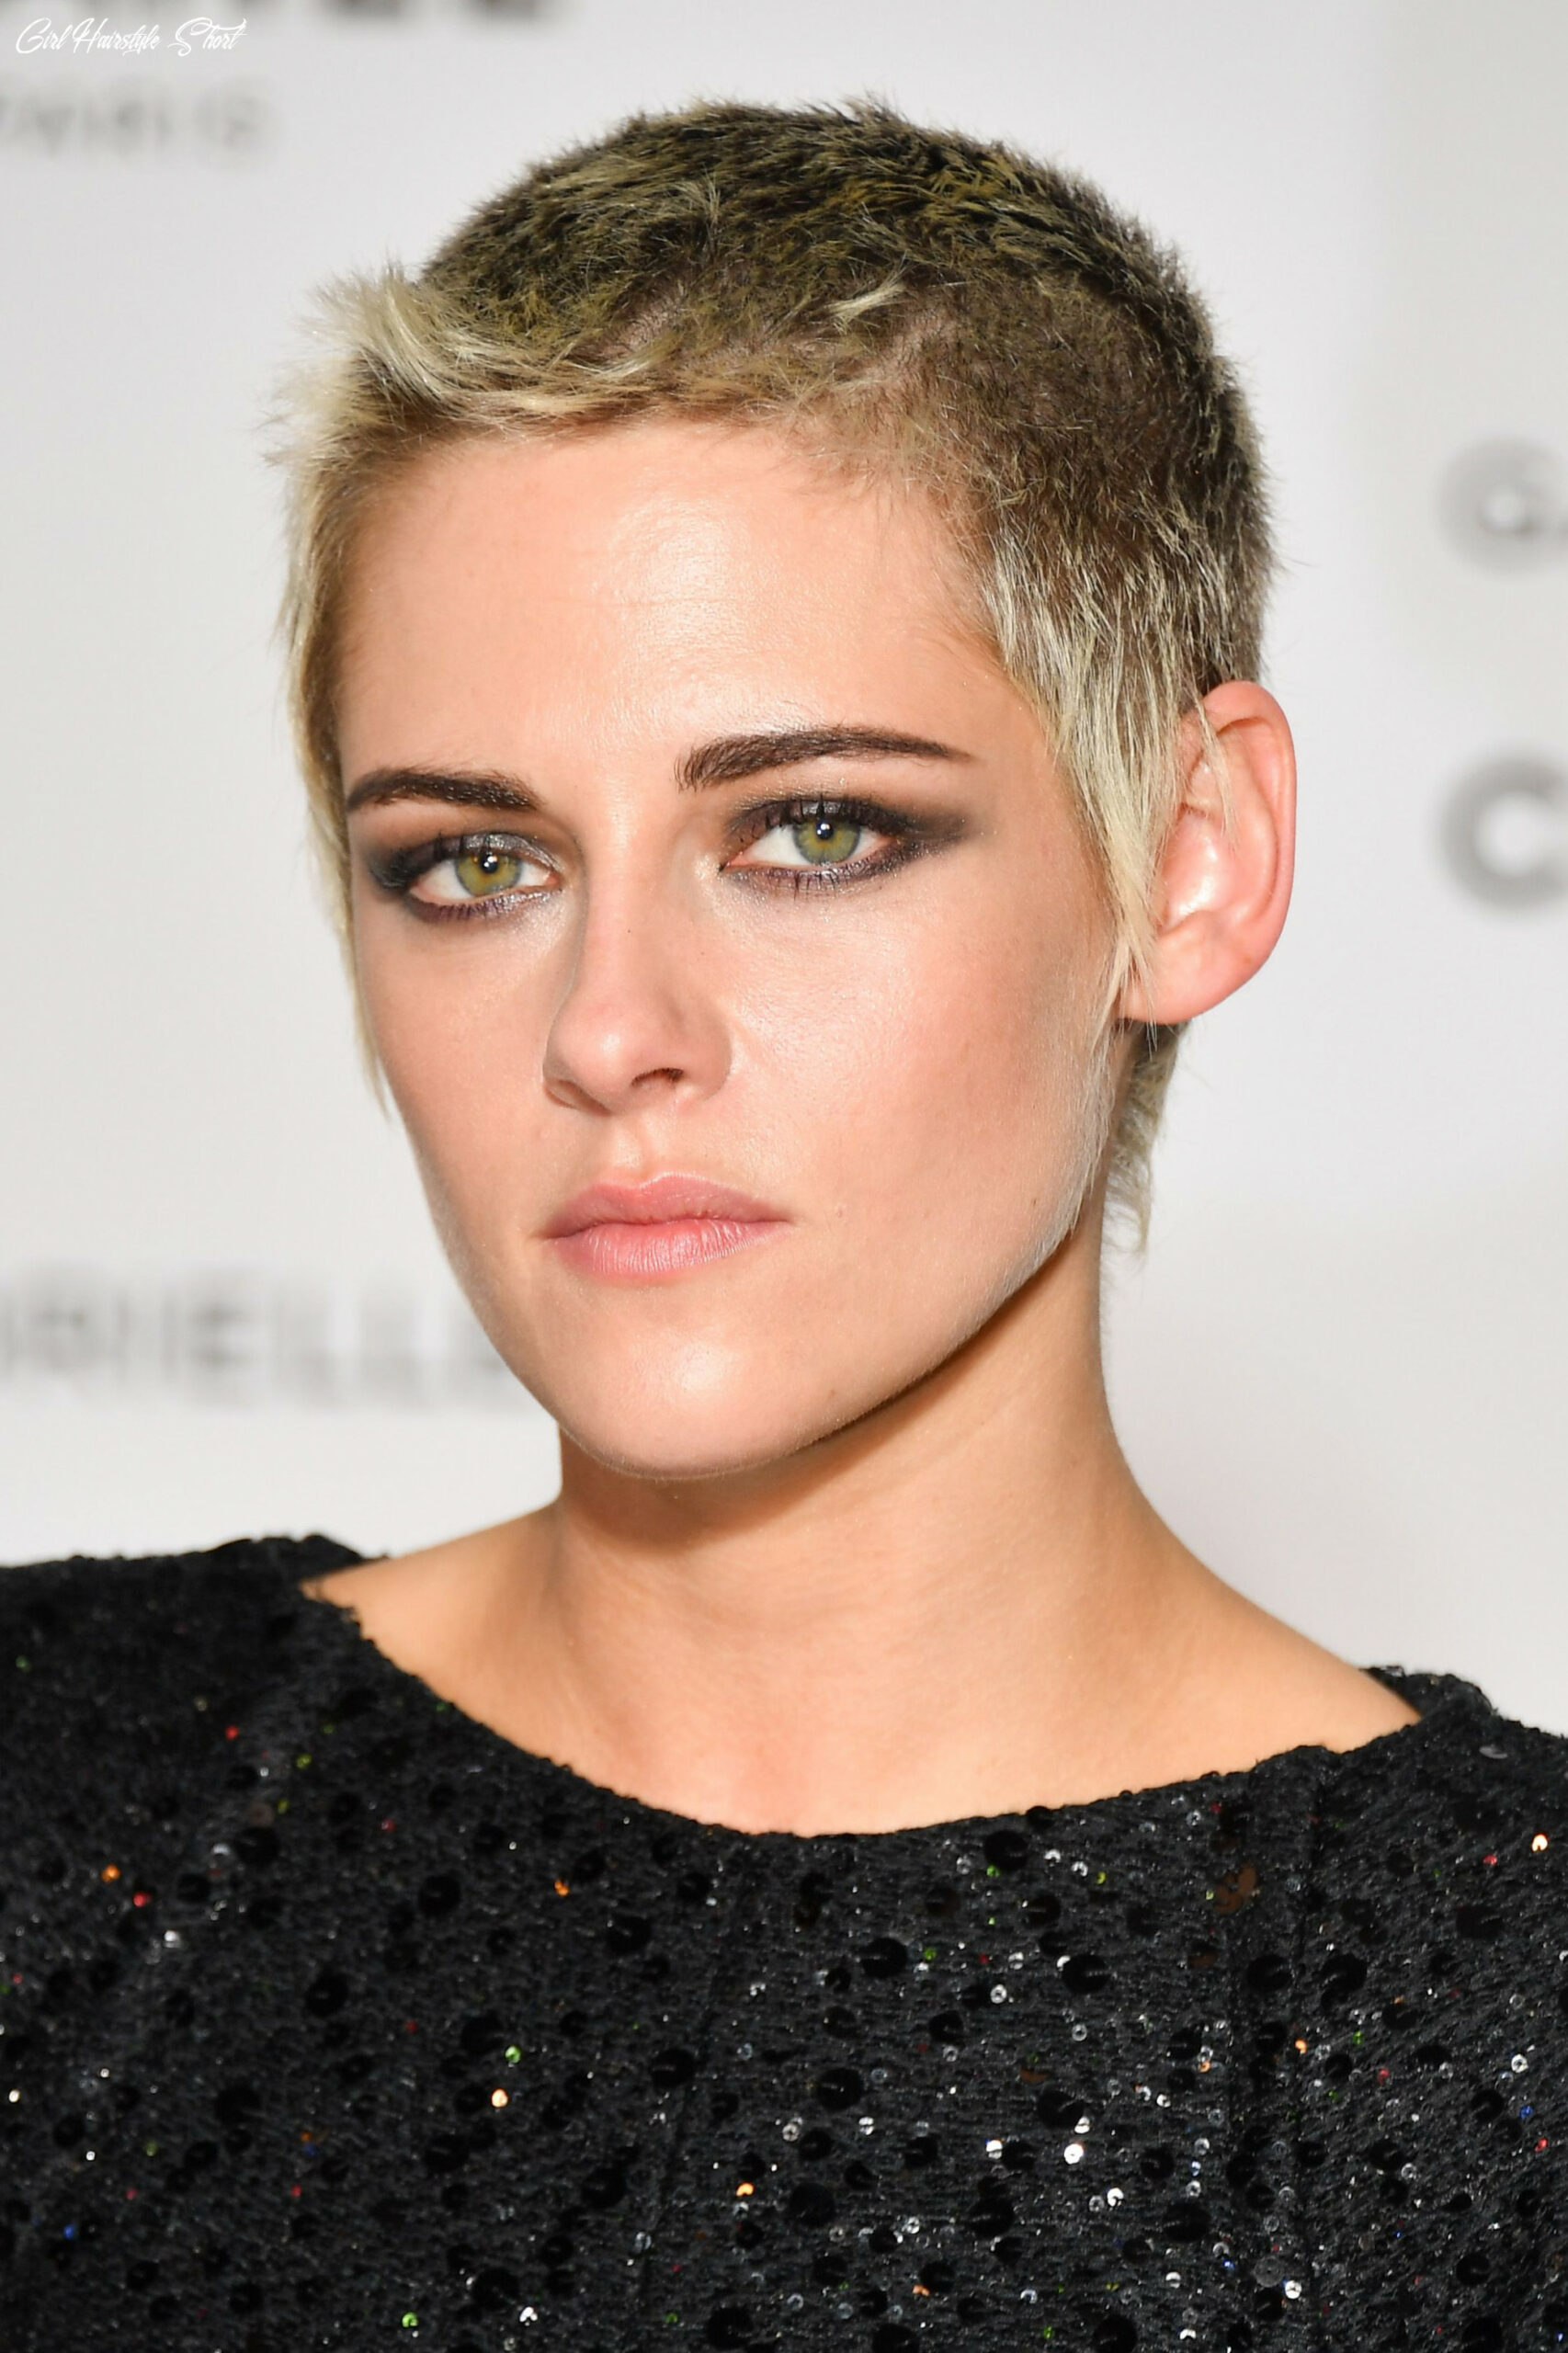 12 cute short hairstyles for women how to style short haircuts girl hairstyle short